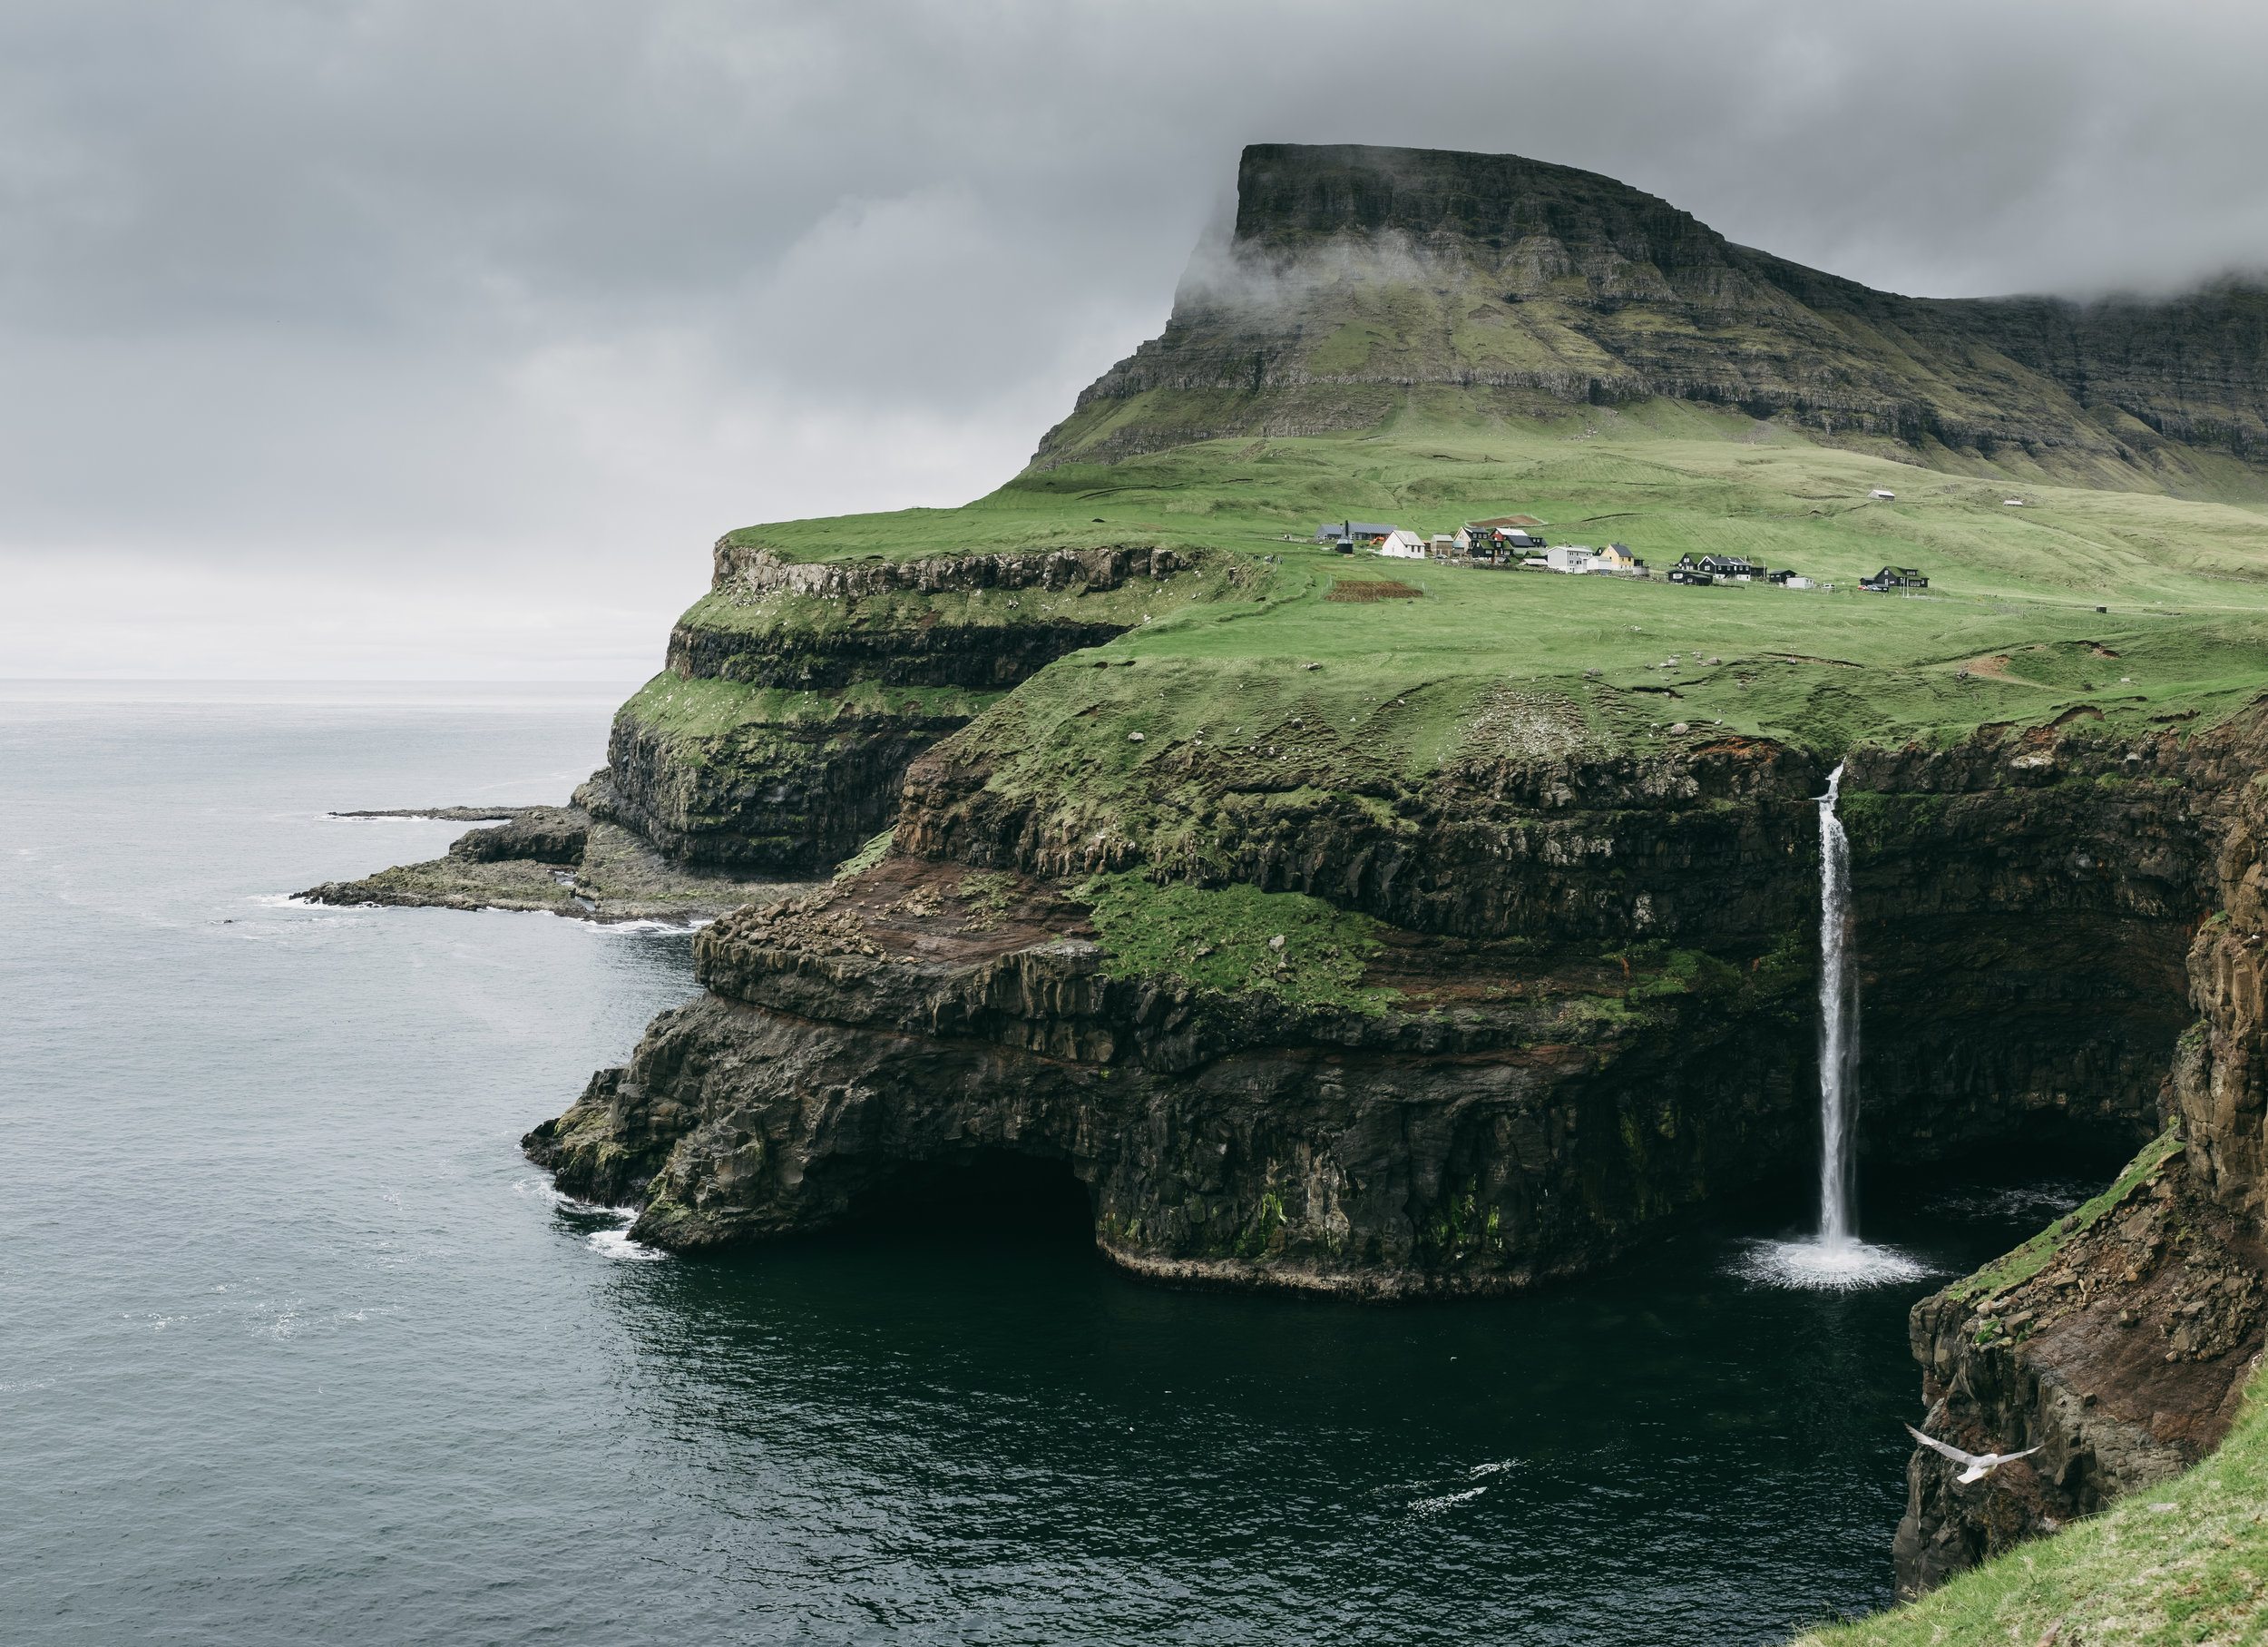 Faroe Islands F-20170528-192-Pano.jpg